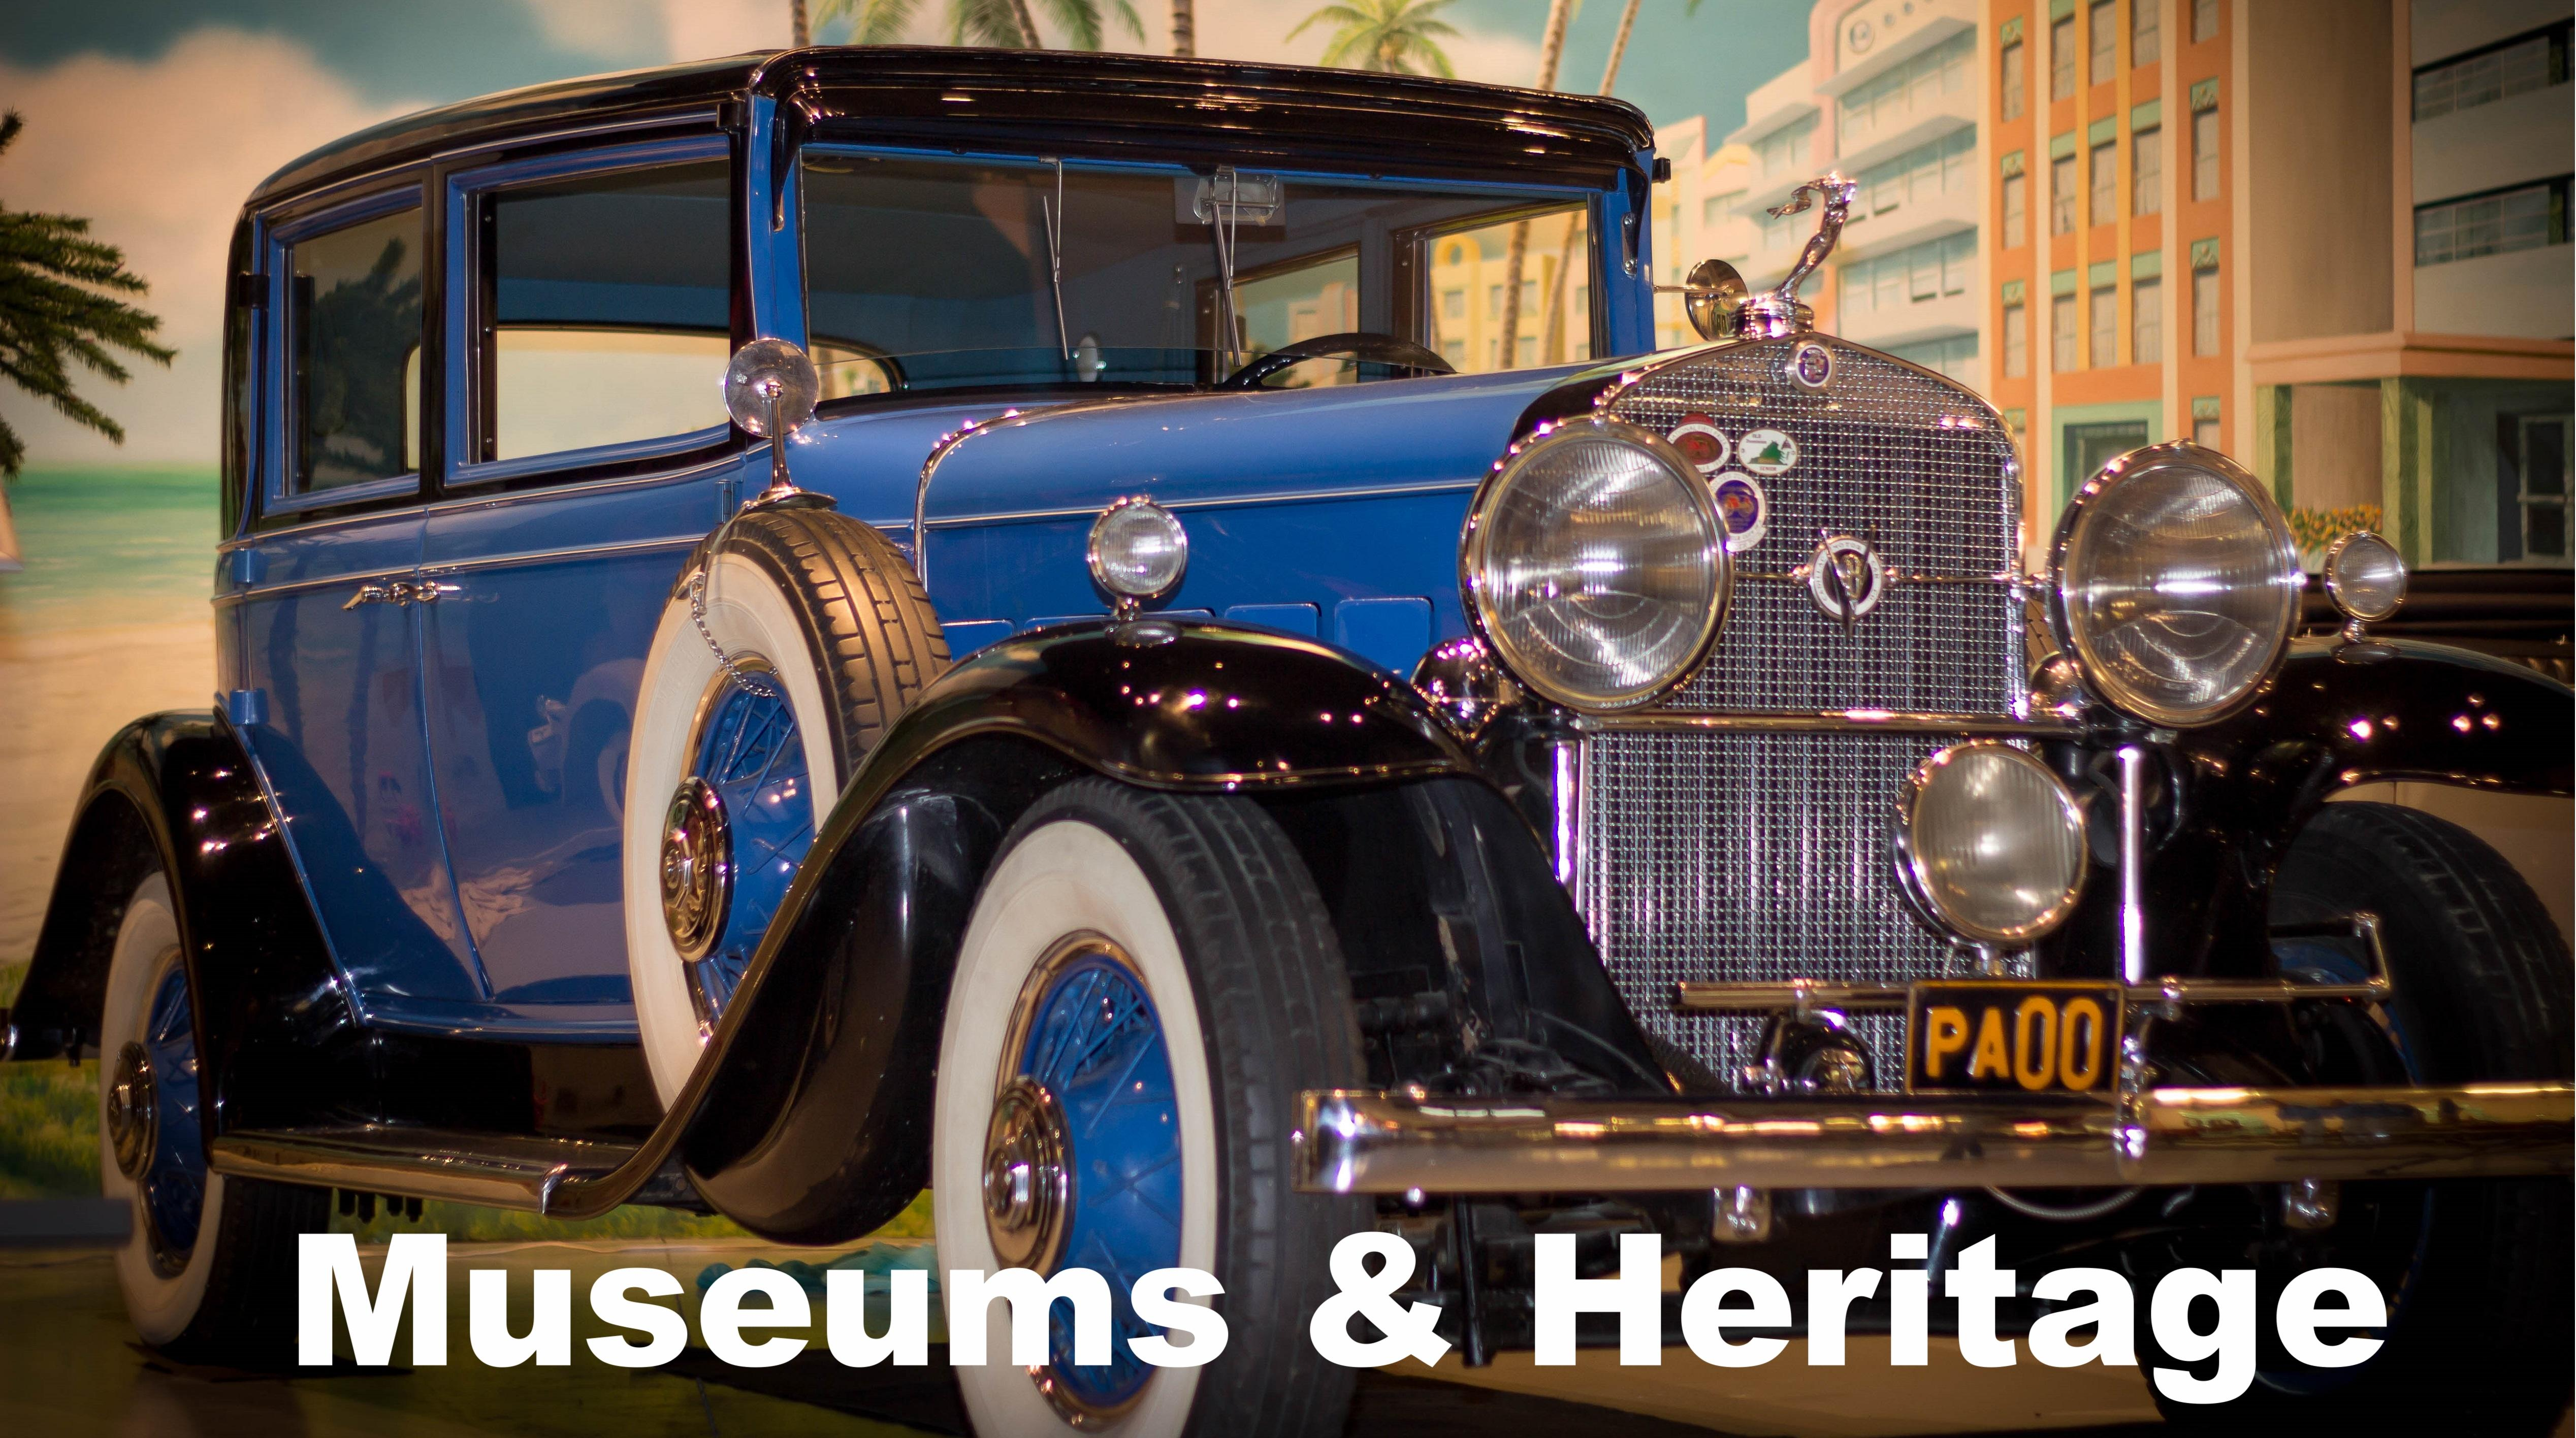 Arts, Museums, & Heritage